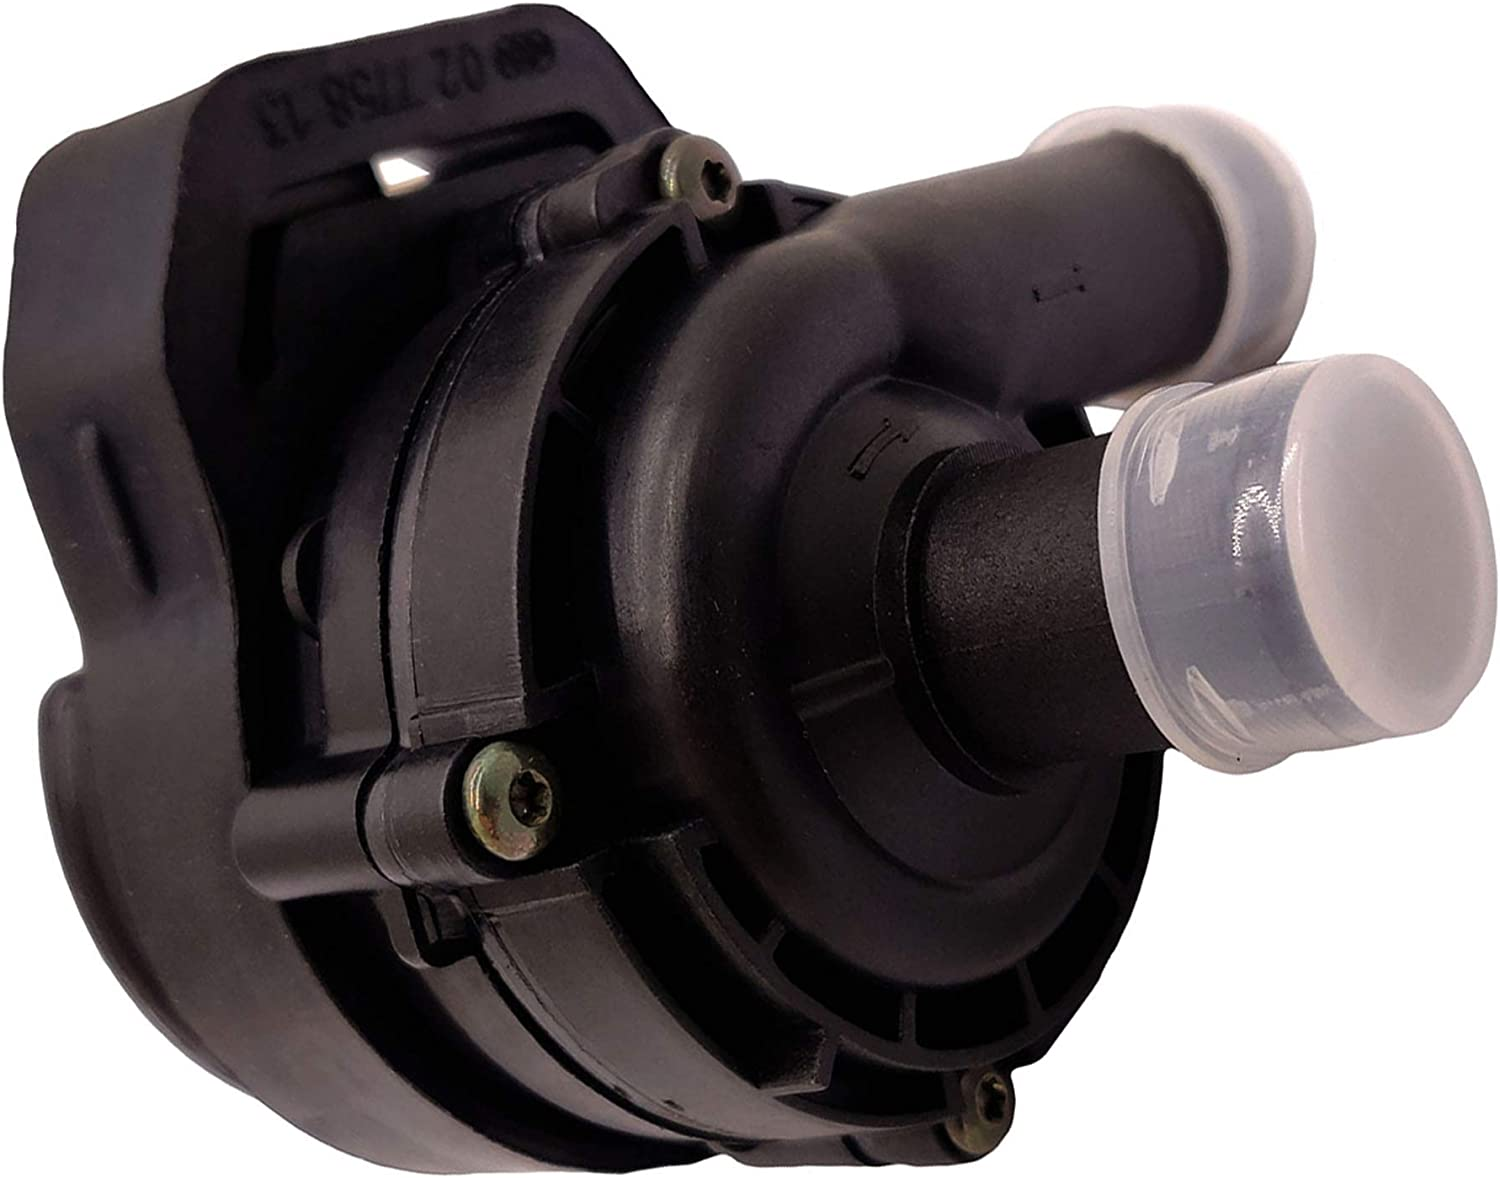 Engine Auxiliary Regular dealer Clearance SALE Limited time Water Pump for G550 2003-2019 GL4 MERCEDES-BENZ